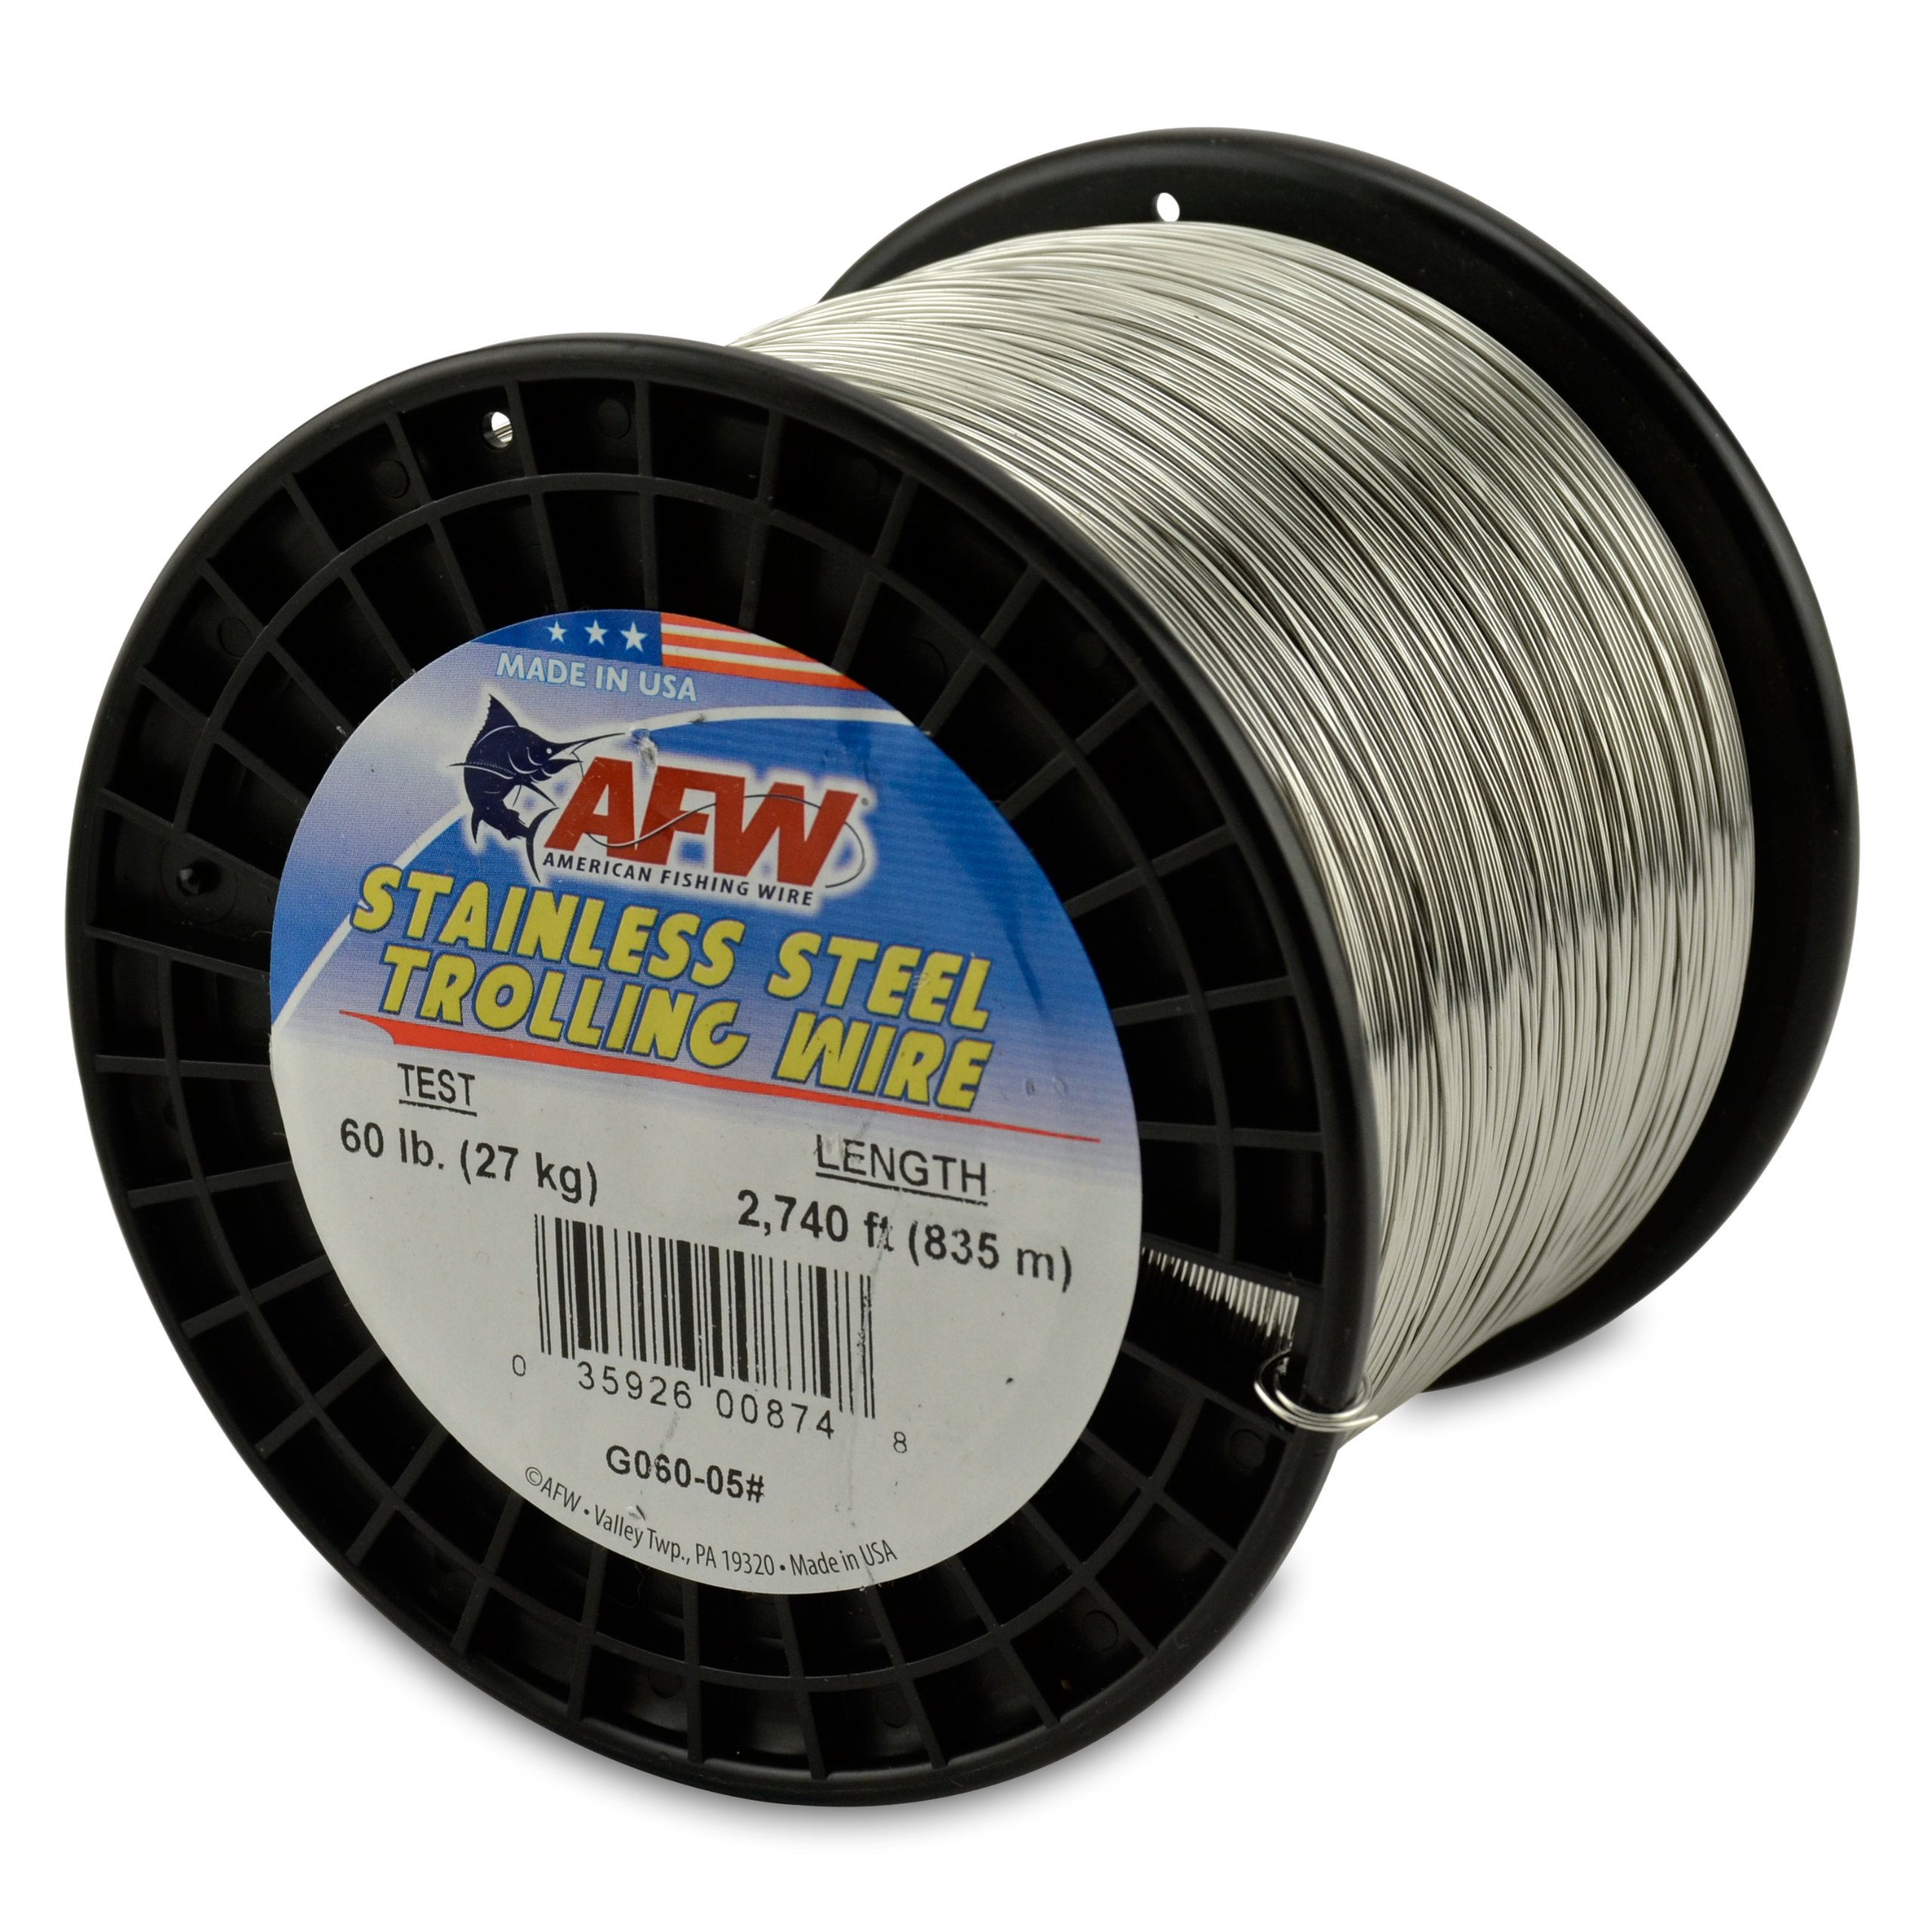 American Fishing Wire Stainless Steel Trolling Wire, 60-Pound Test/0.66mm Dia/835m by American Fishing Wire